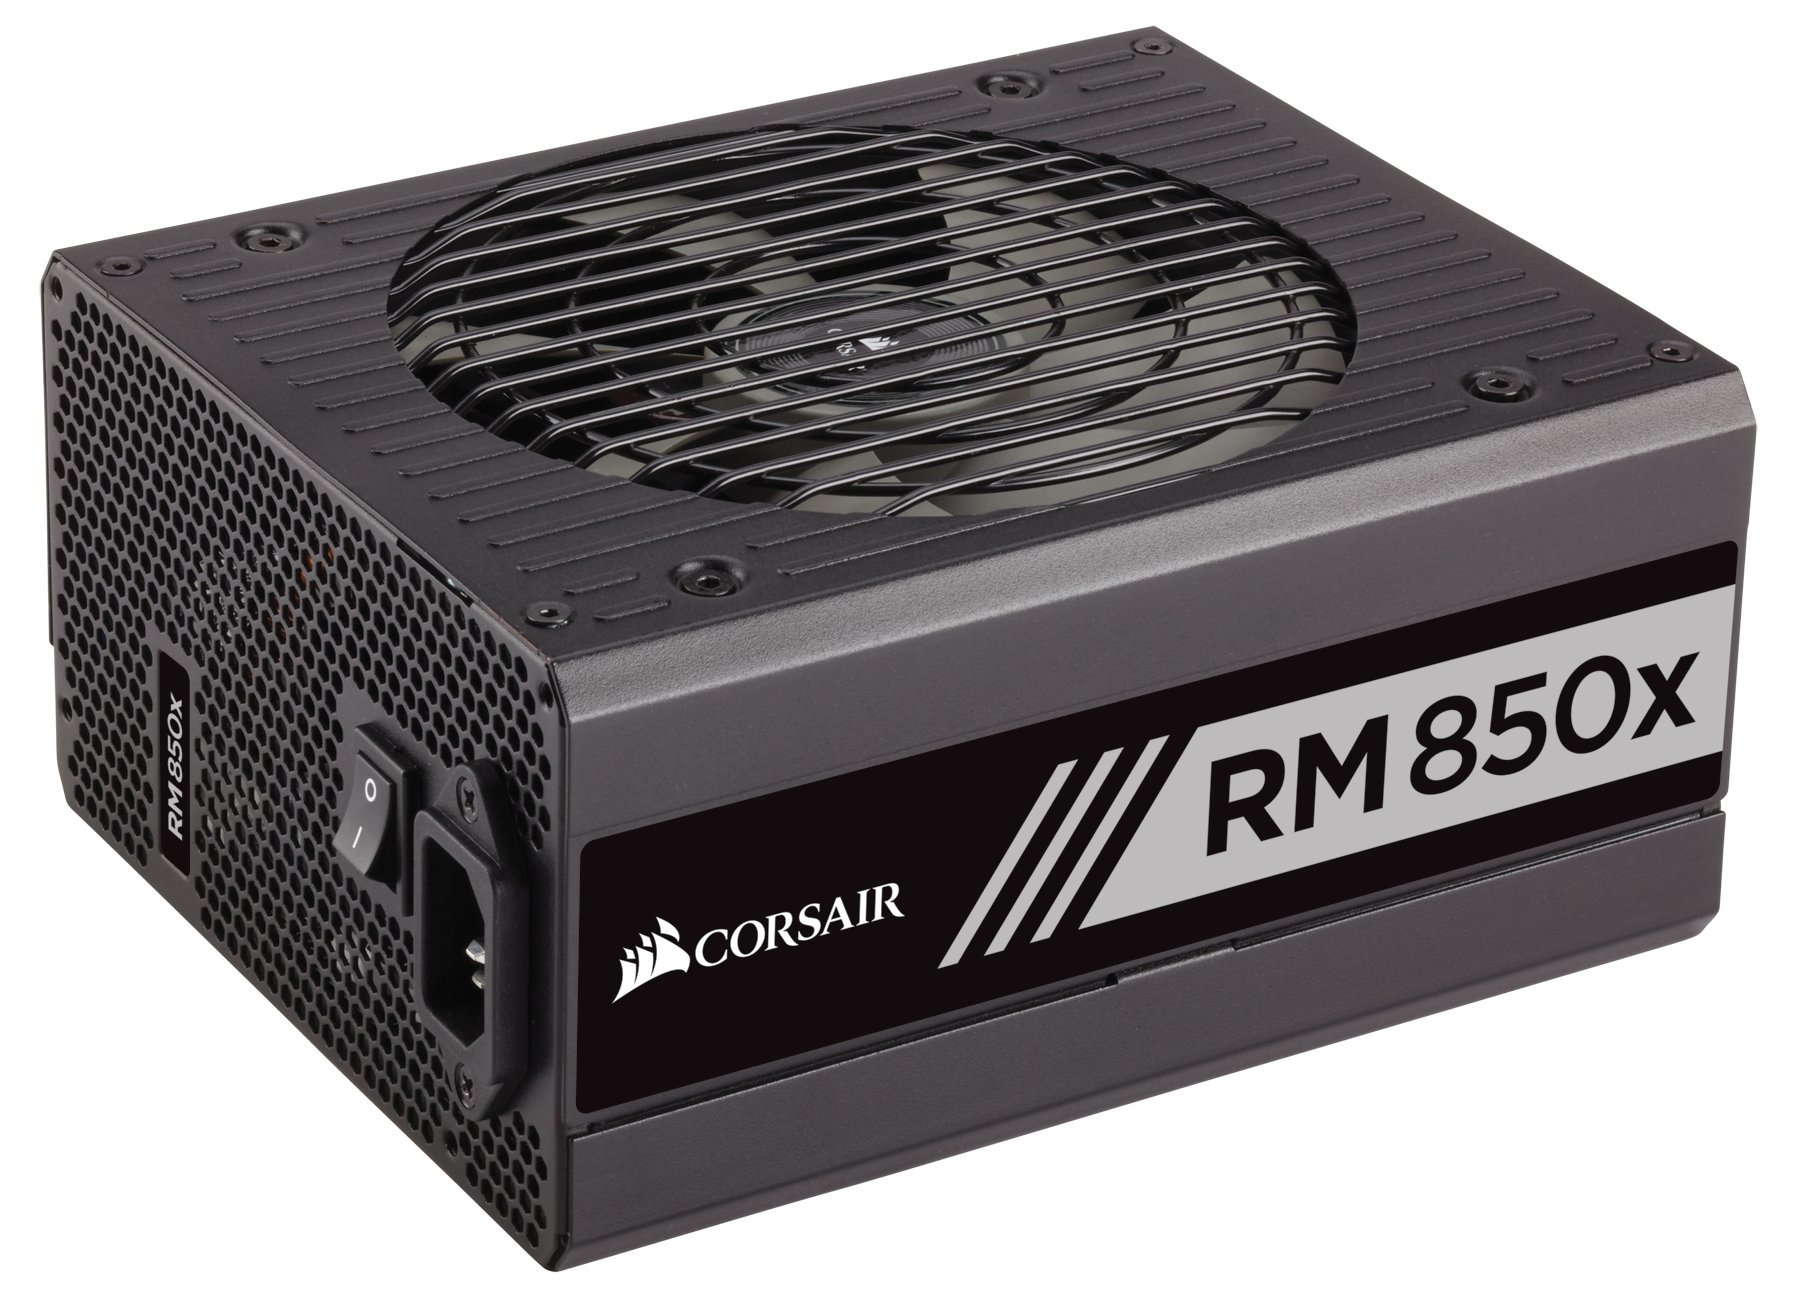 CORSAIR RMX Series, RM850x, 850 Watt, 80+ Gold Certified, Fully Modular Power Supply